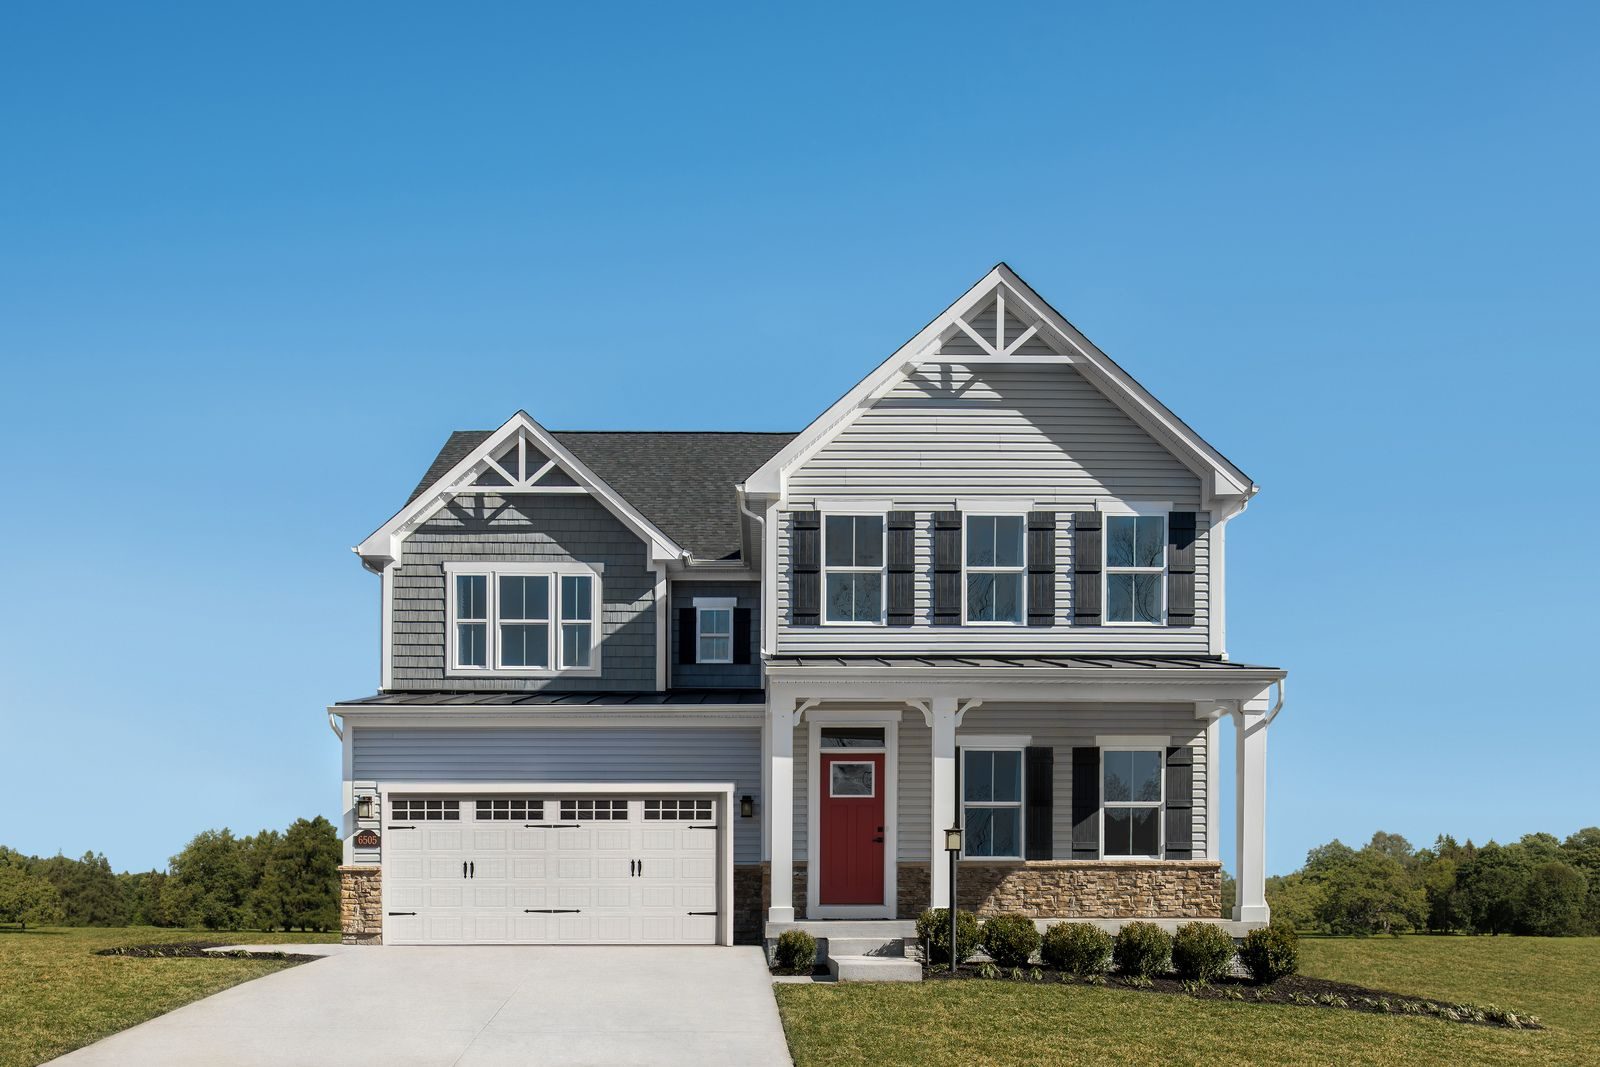 New Construction Homes Plans In Manassas Va 784 Homes Newhomesource